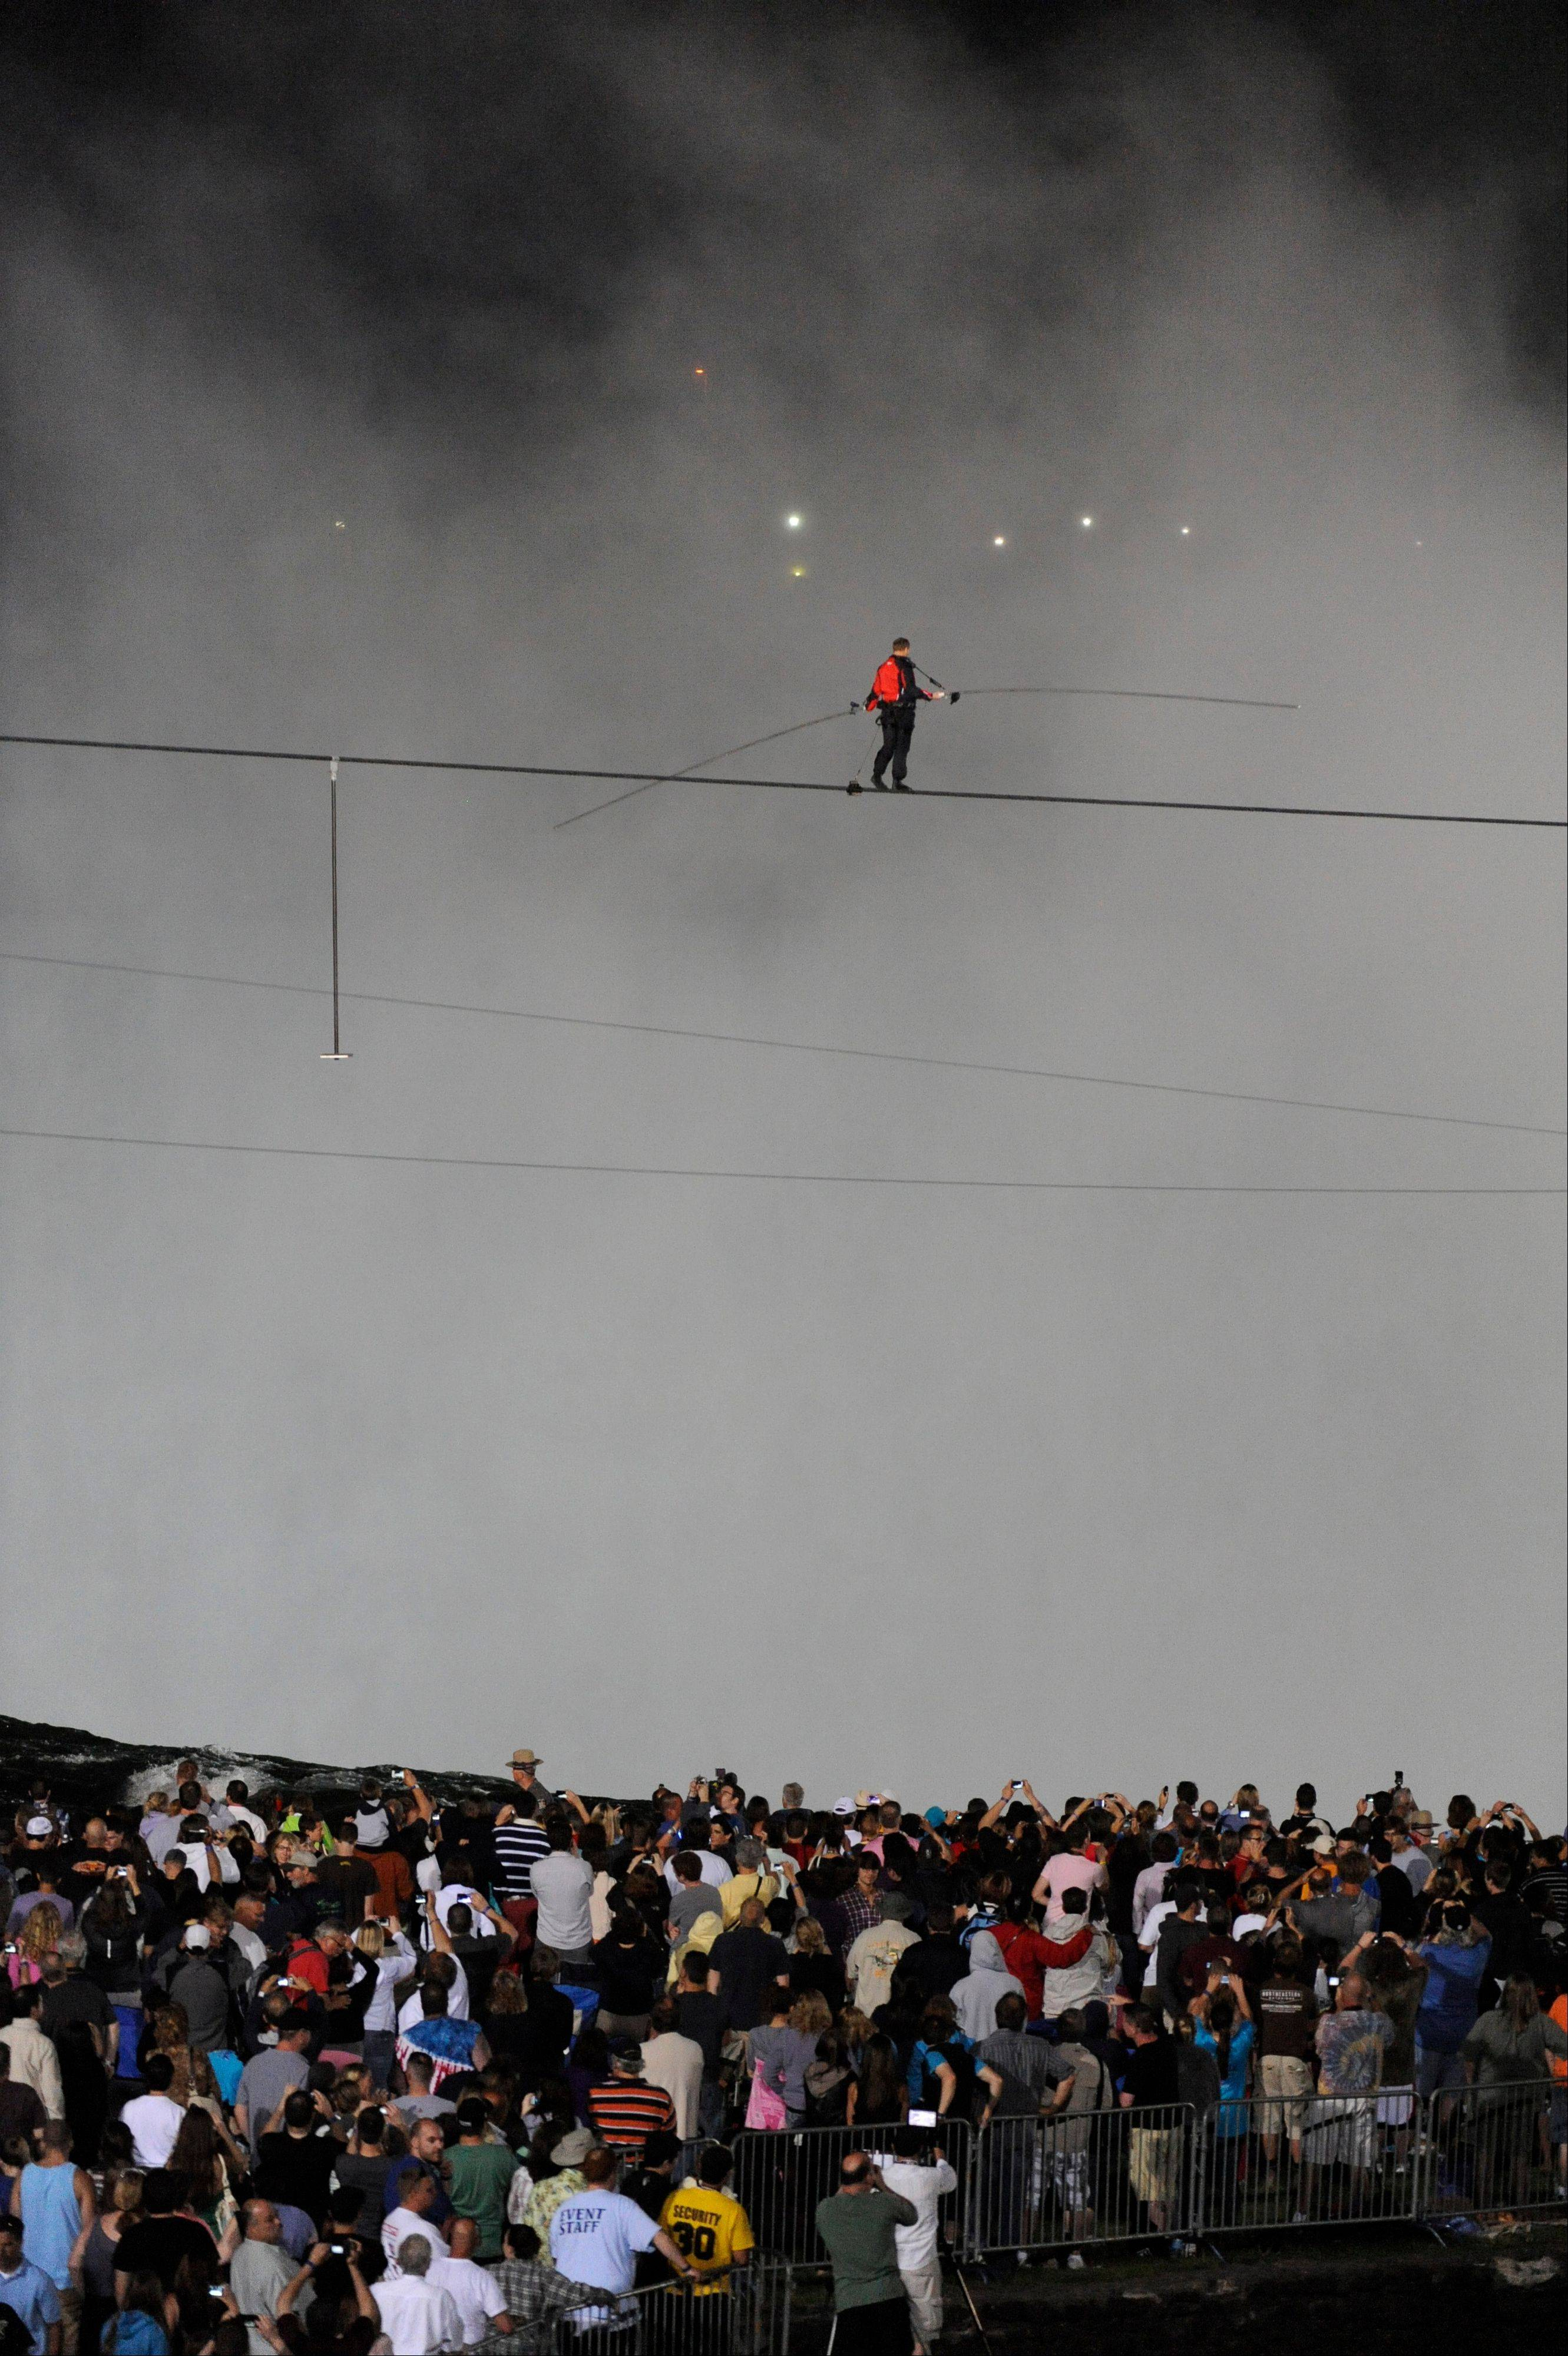 Nik Wallenda walks across Niagara Falls on a tightrope as seen from Niagara Falls, N.Y., Friday, June 15, 2012. Wallenda has finished his attempt to become the first person to walk on a tightrope 1,800 feet across the mist-fogged brink of roaring Niagara Falls. The seventh-generation member of the famed Flying Wallendas had long dreamed of pulling off the stunt, never before attempted.